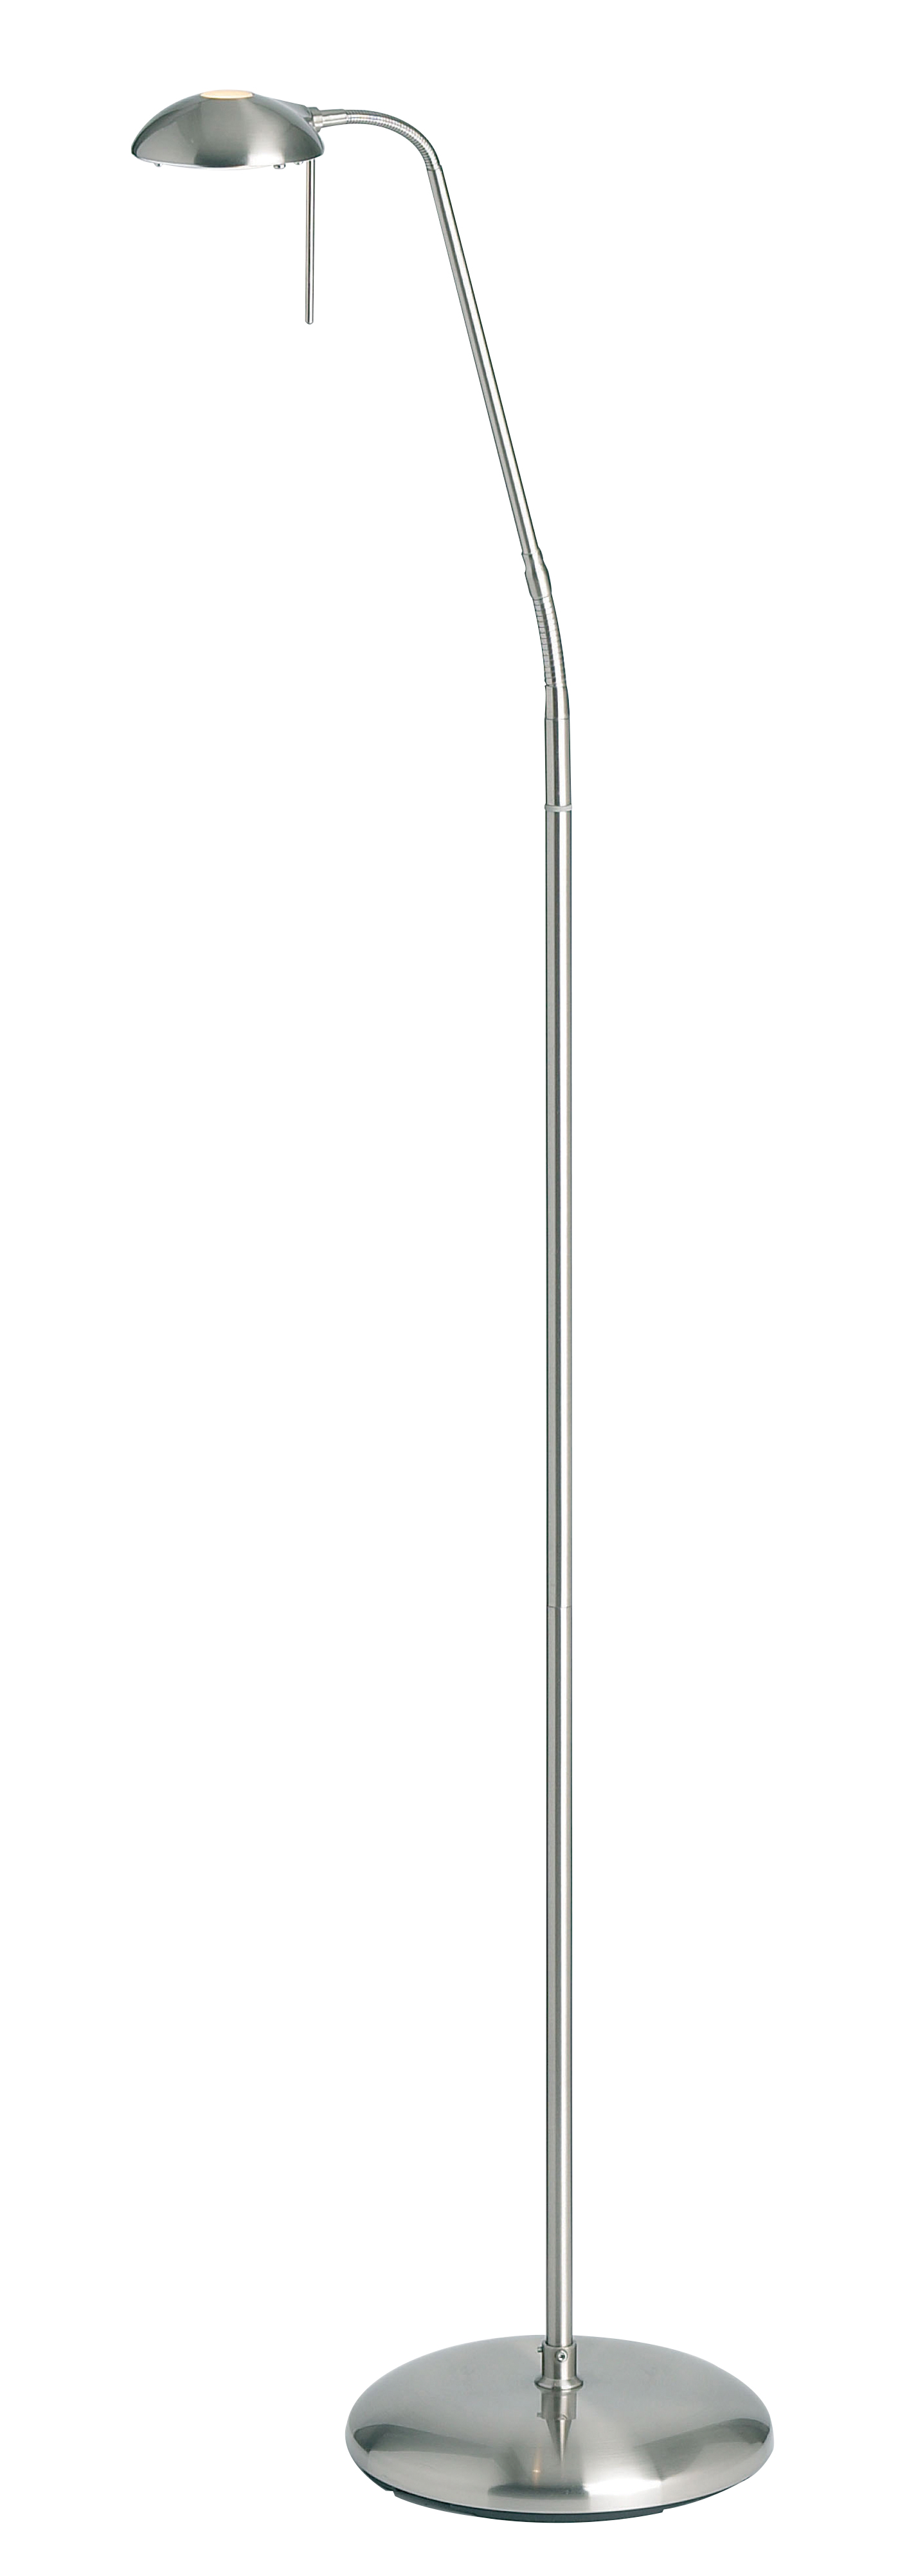 Endon Hackney touch task floor lamp 33W Satin chrome effect plate